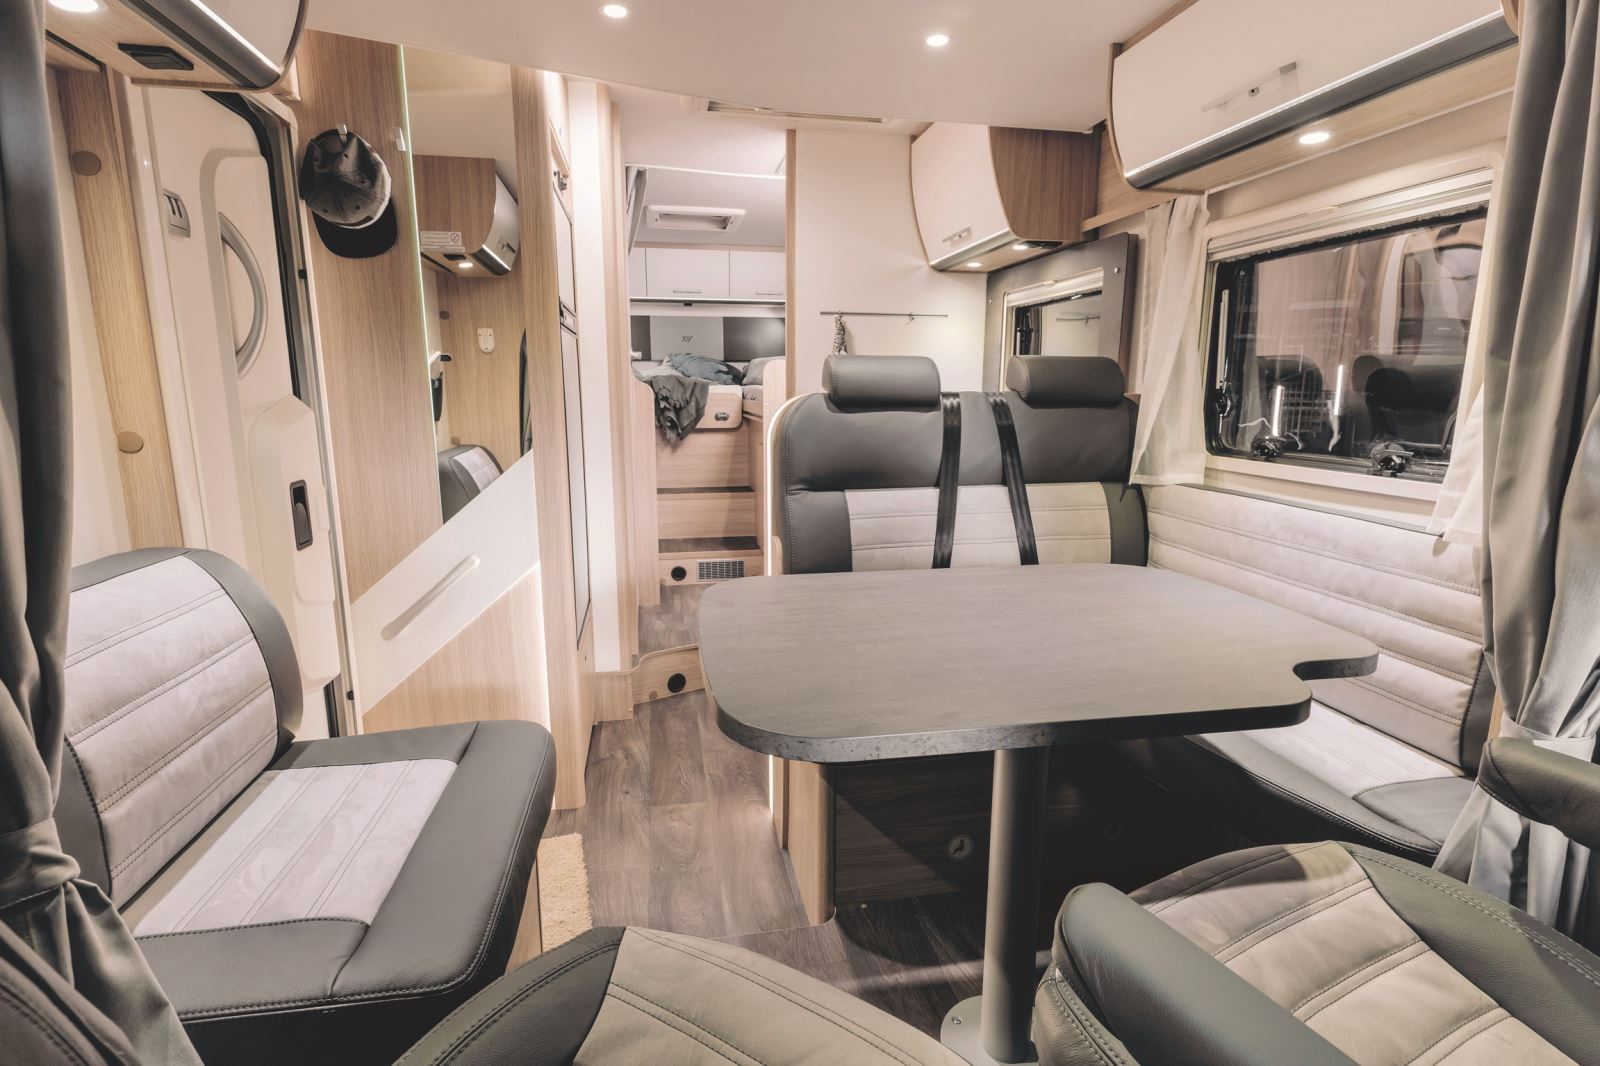 Interior of the Sunlight T68 Special Edition XV motorhome